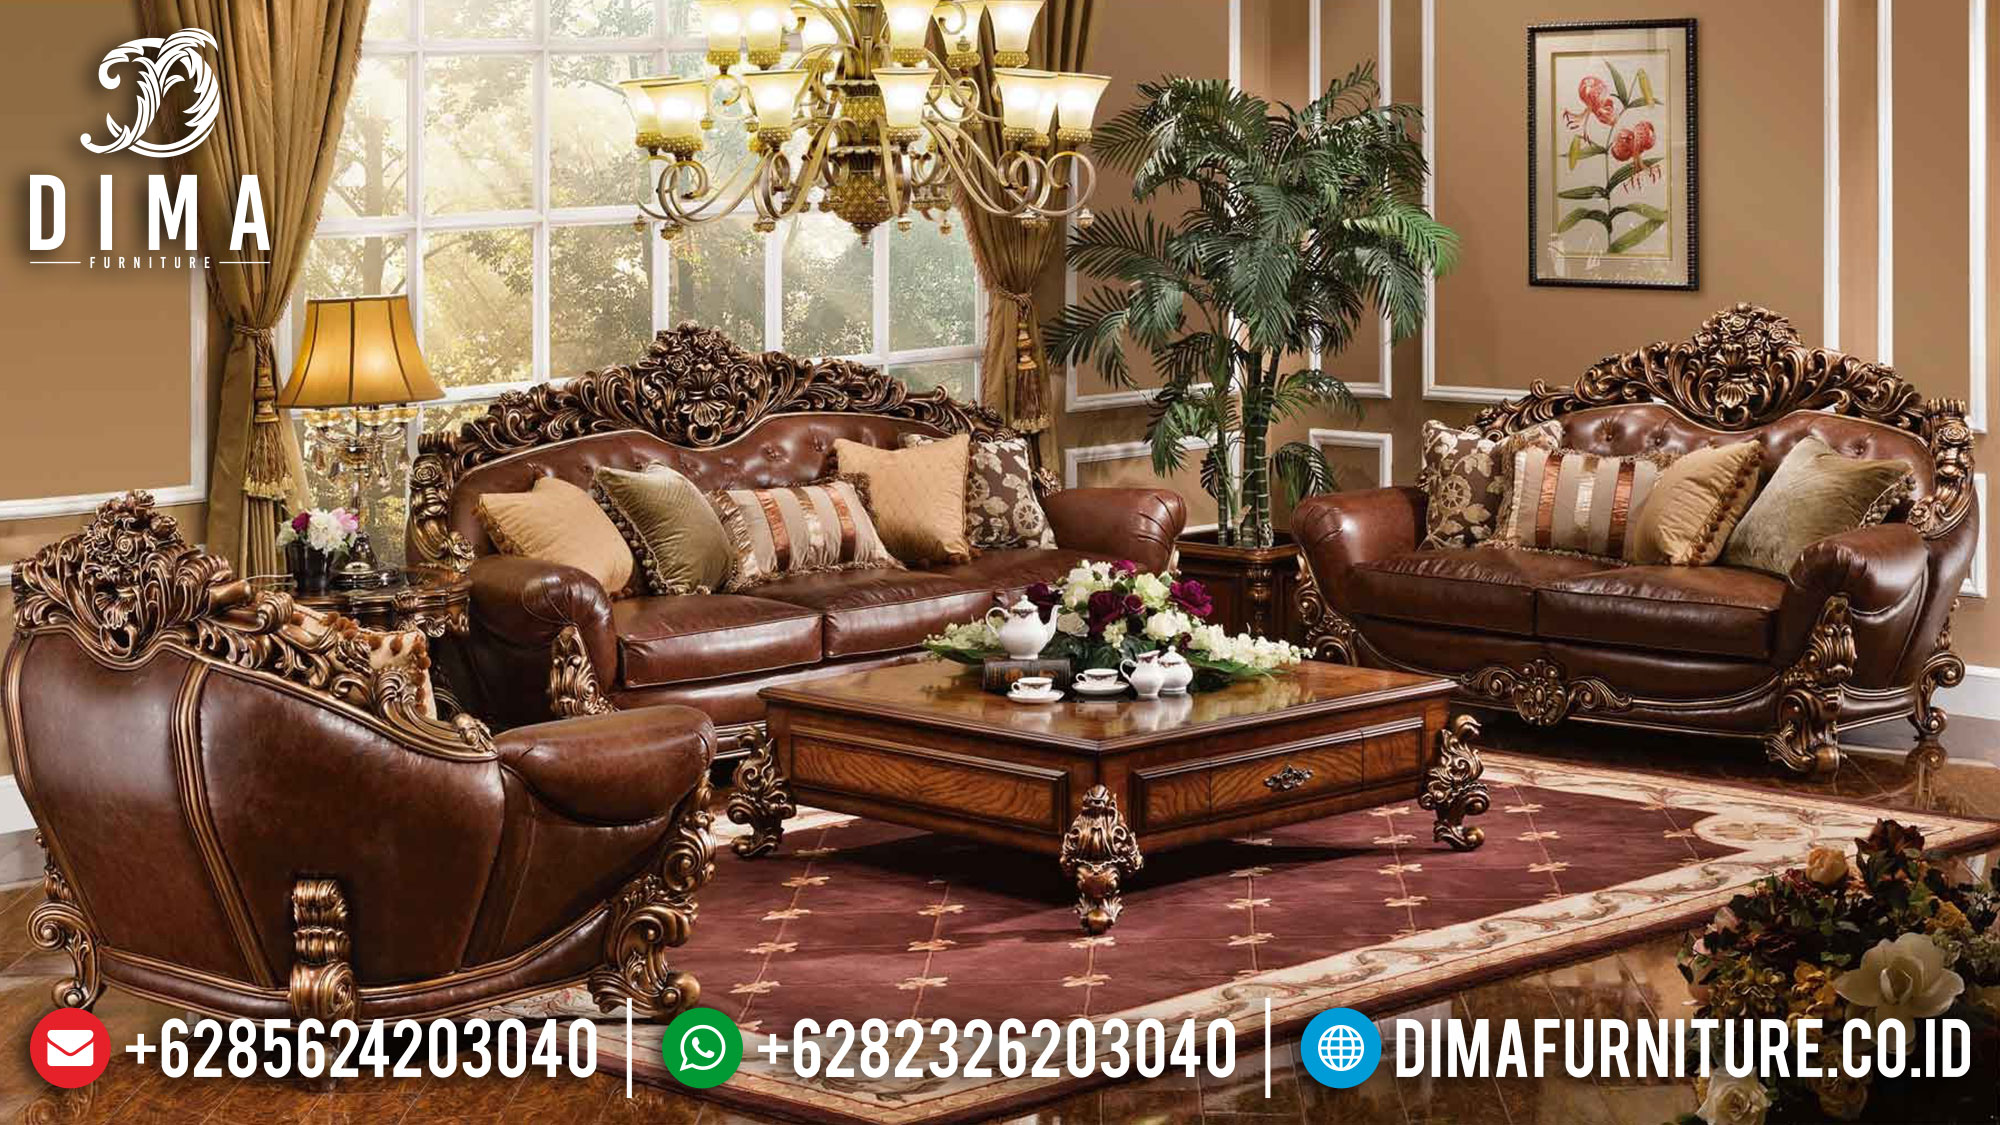 Glorious Design Sofa Tamu Mewah Ukiran Jepara Luxury Sets Mebel Jepara Mm-0981